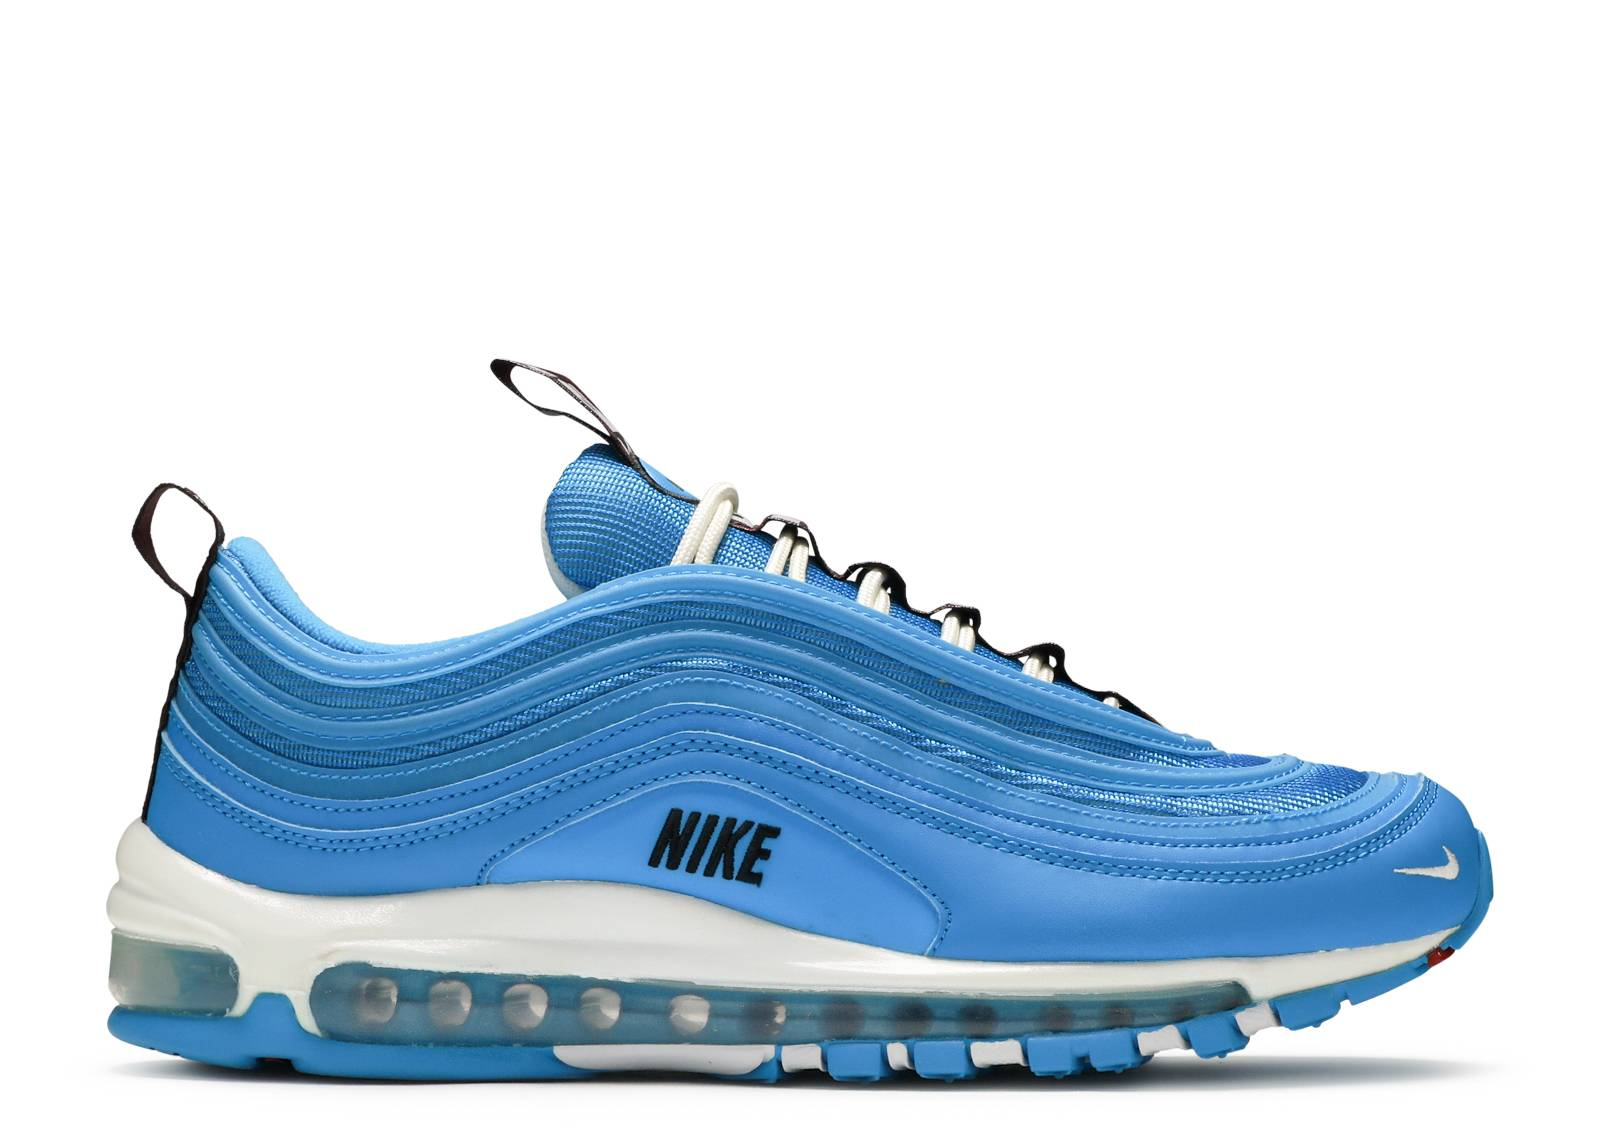 b91c633814 Nike Air Max 97 - Men's & Women's Shoes | Flight Club